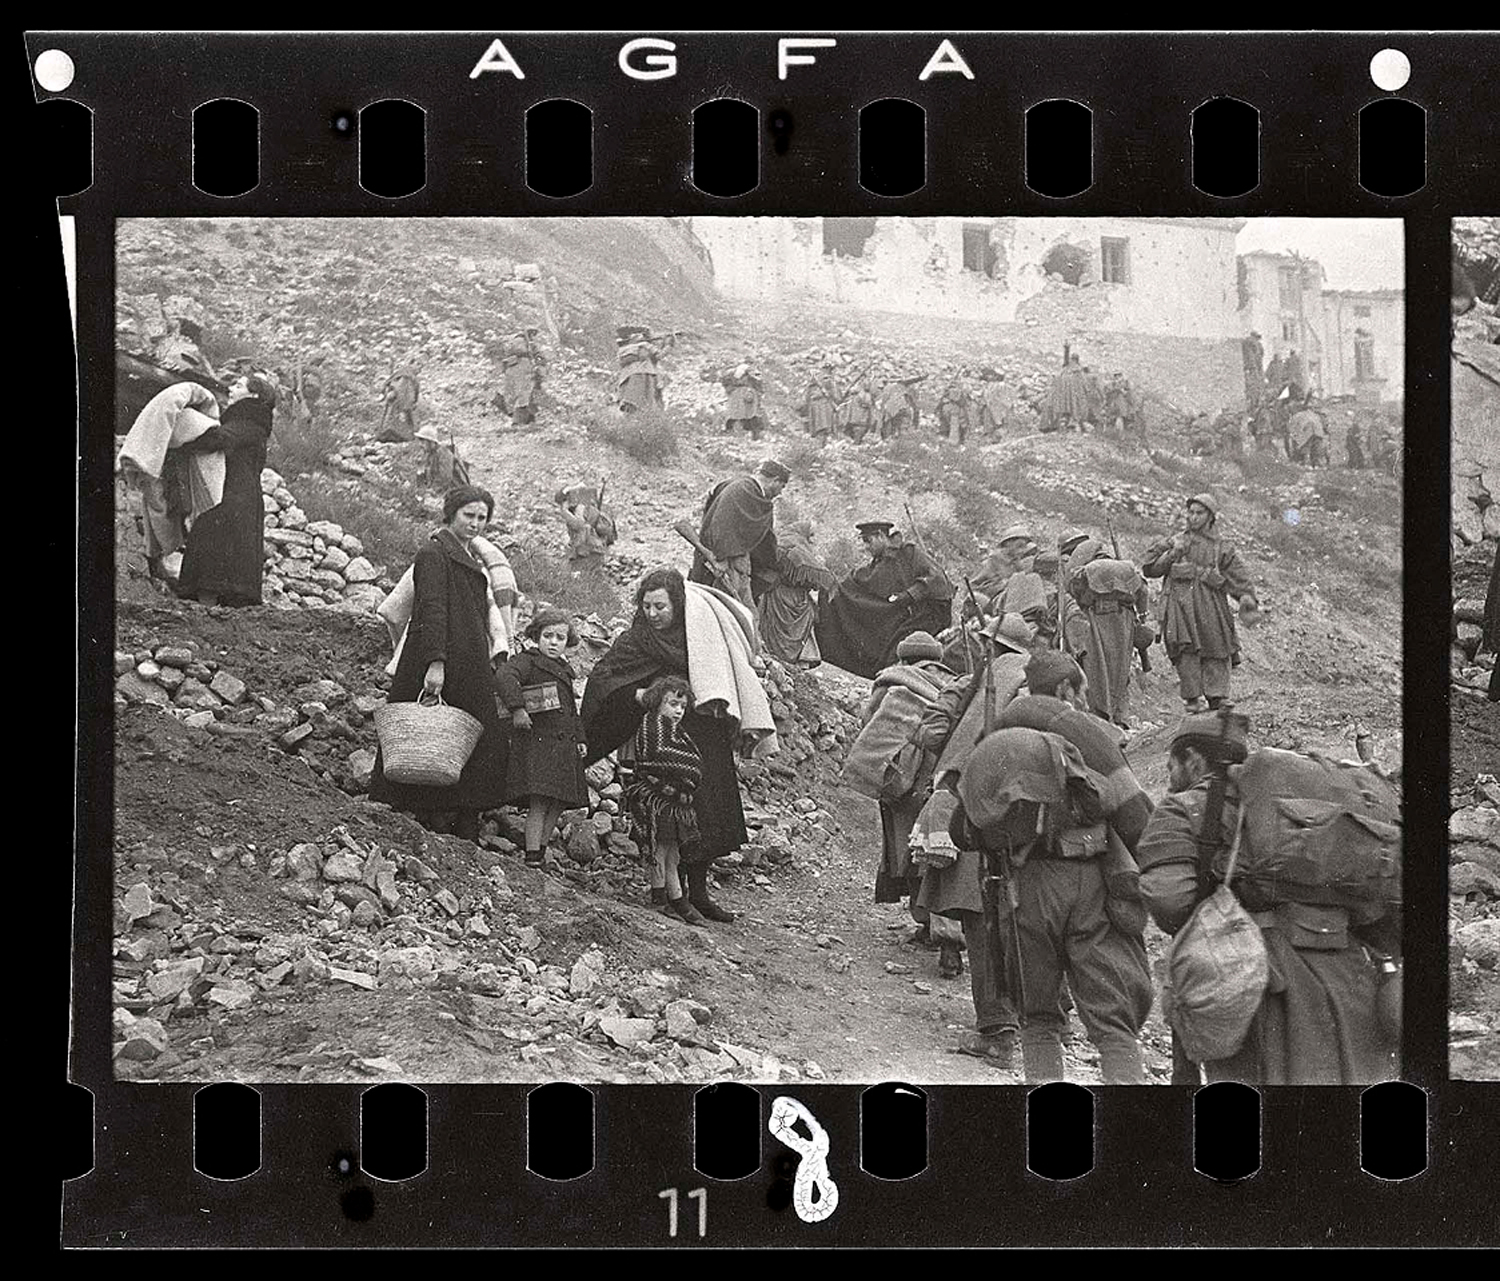 Refugees flee during the Battle of Teruel, Spain, December 1937